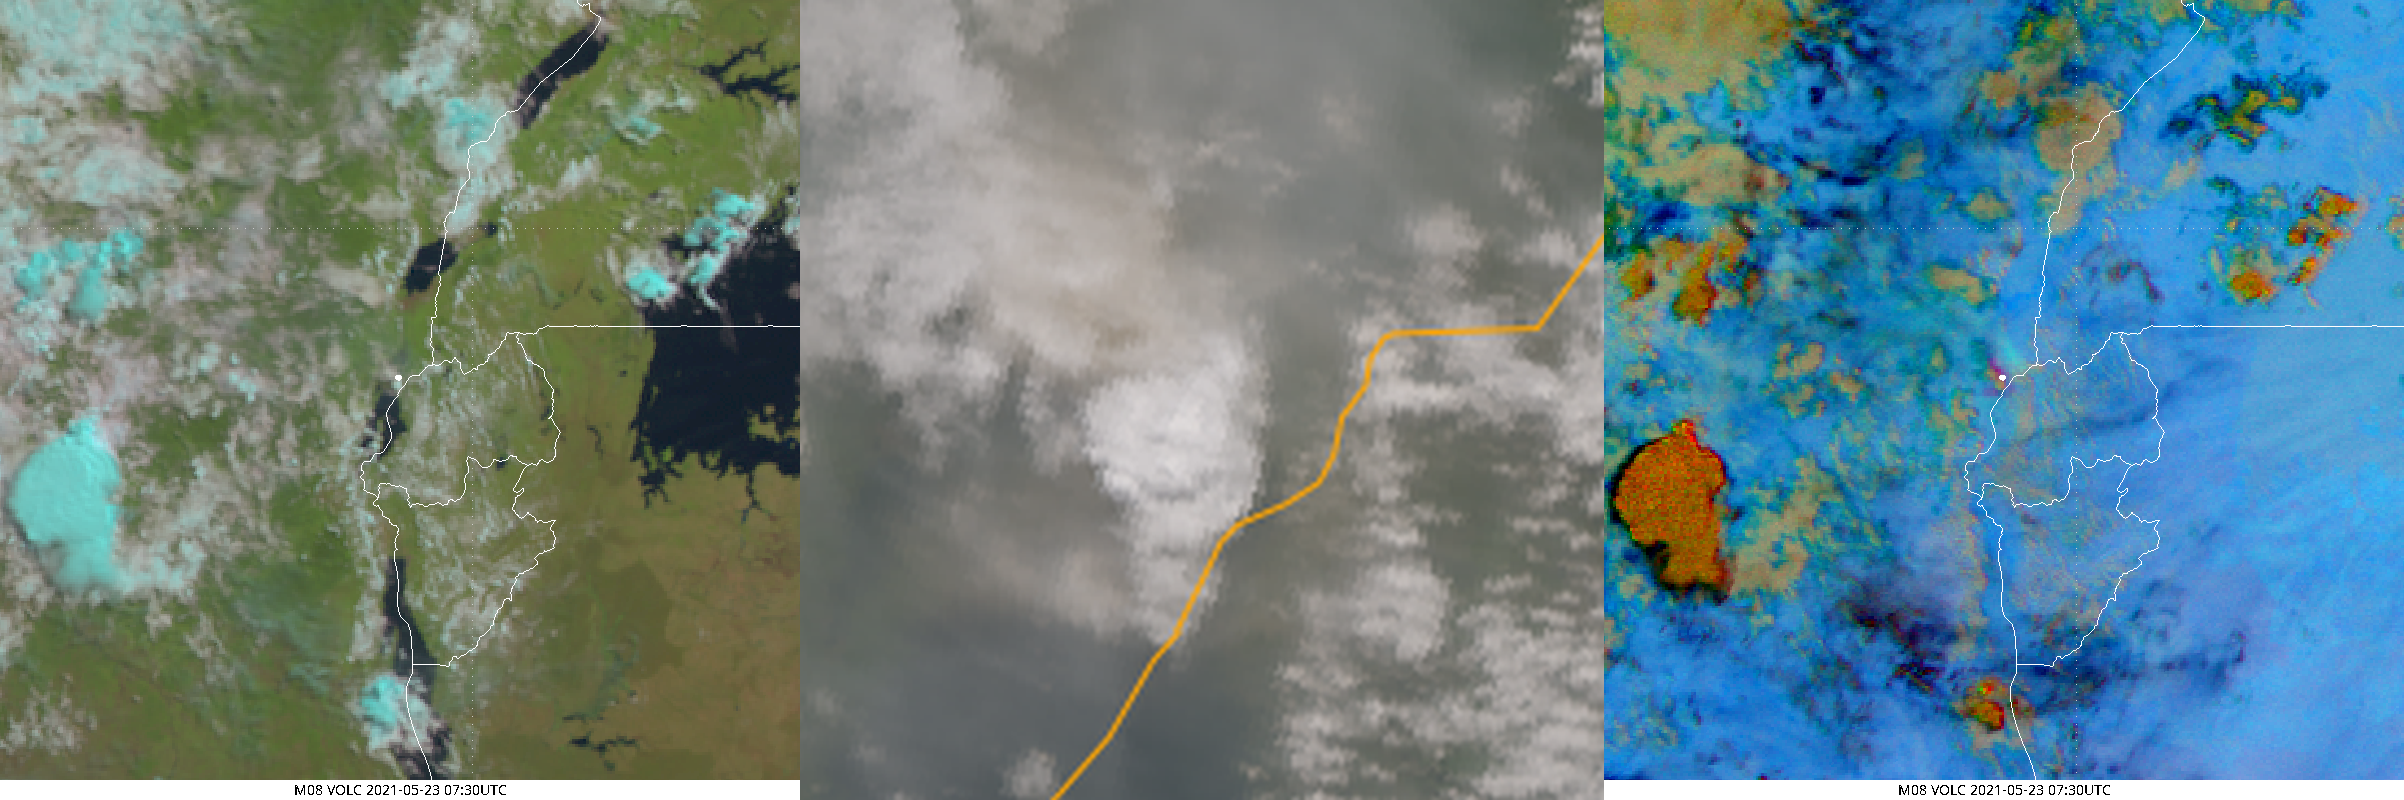 Met-8 and S3a imagery, 23 May 2021